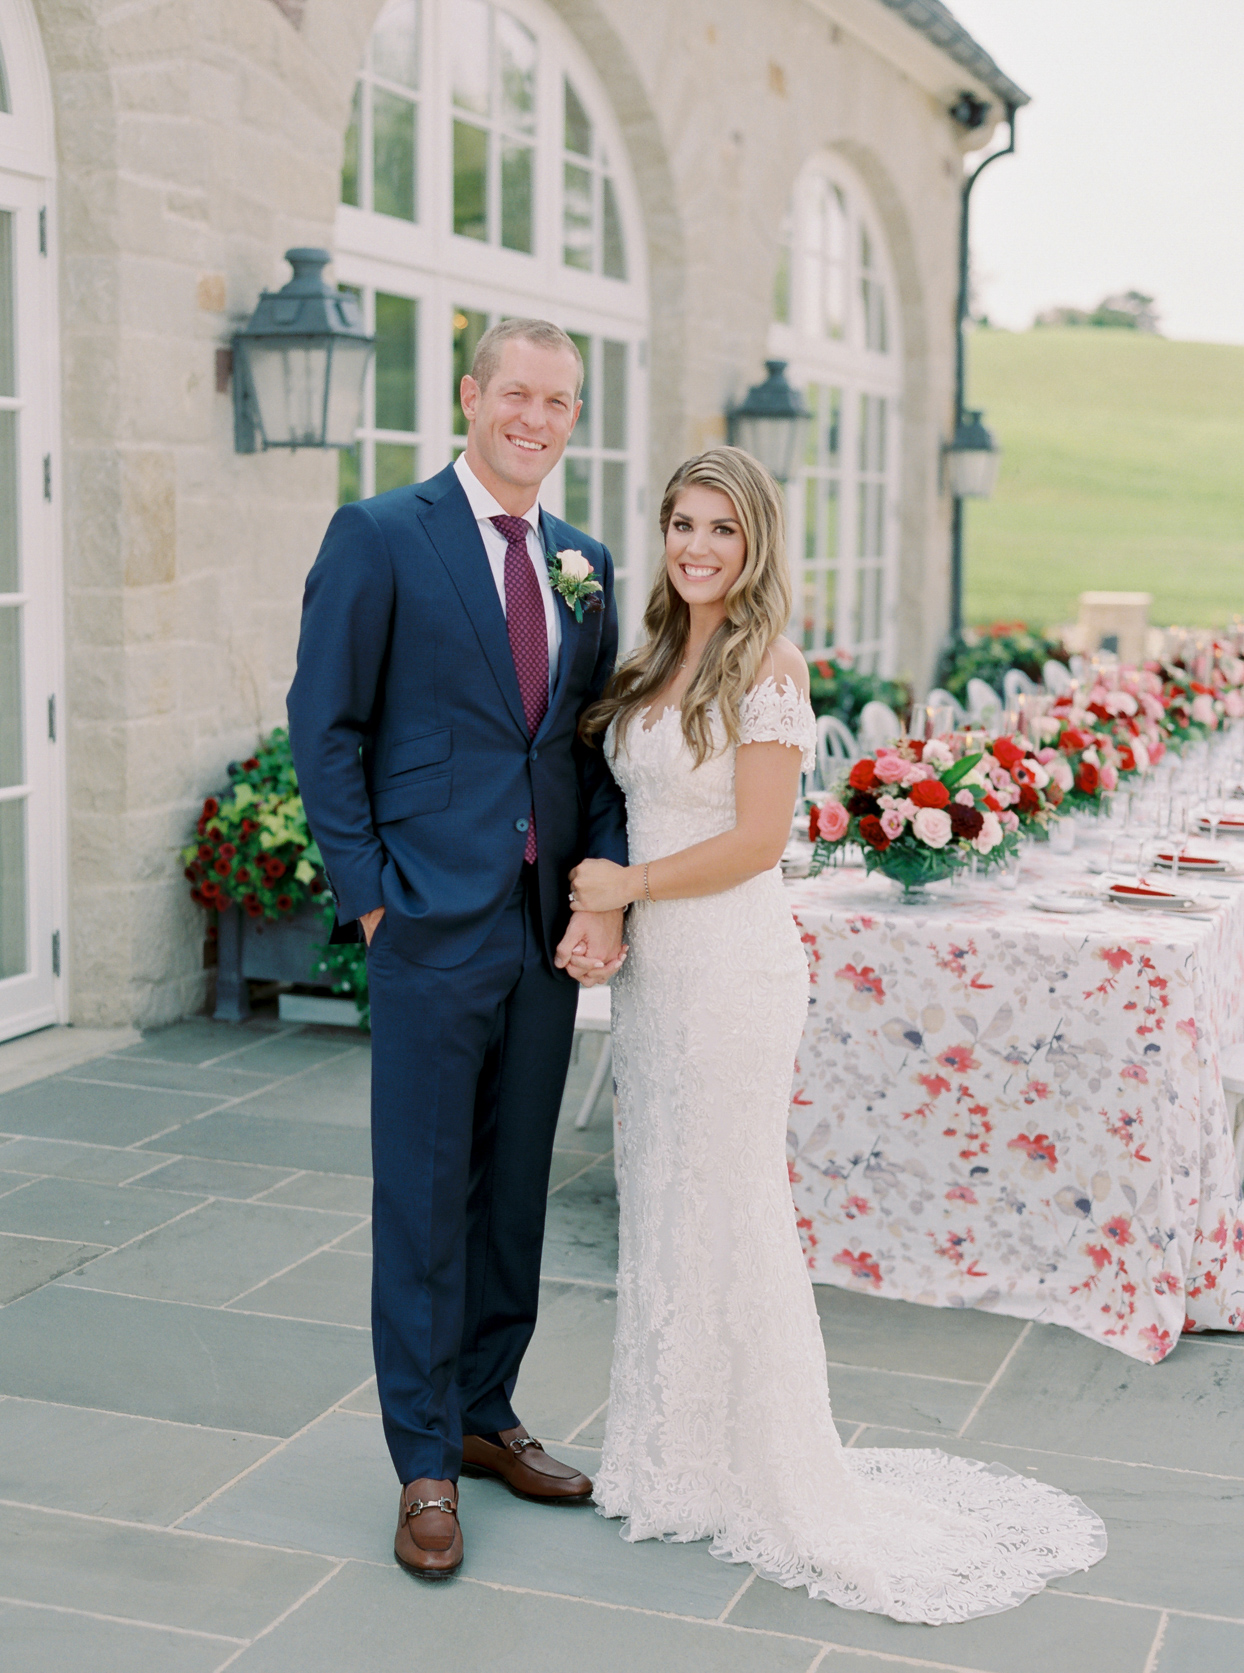 bride and groom standing beside floral table